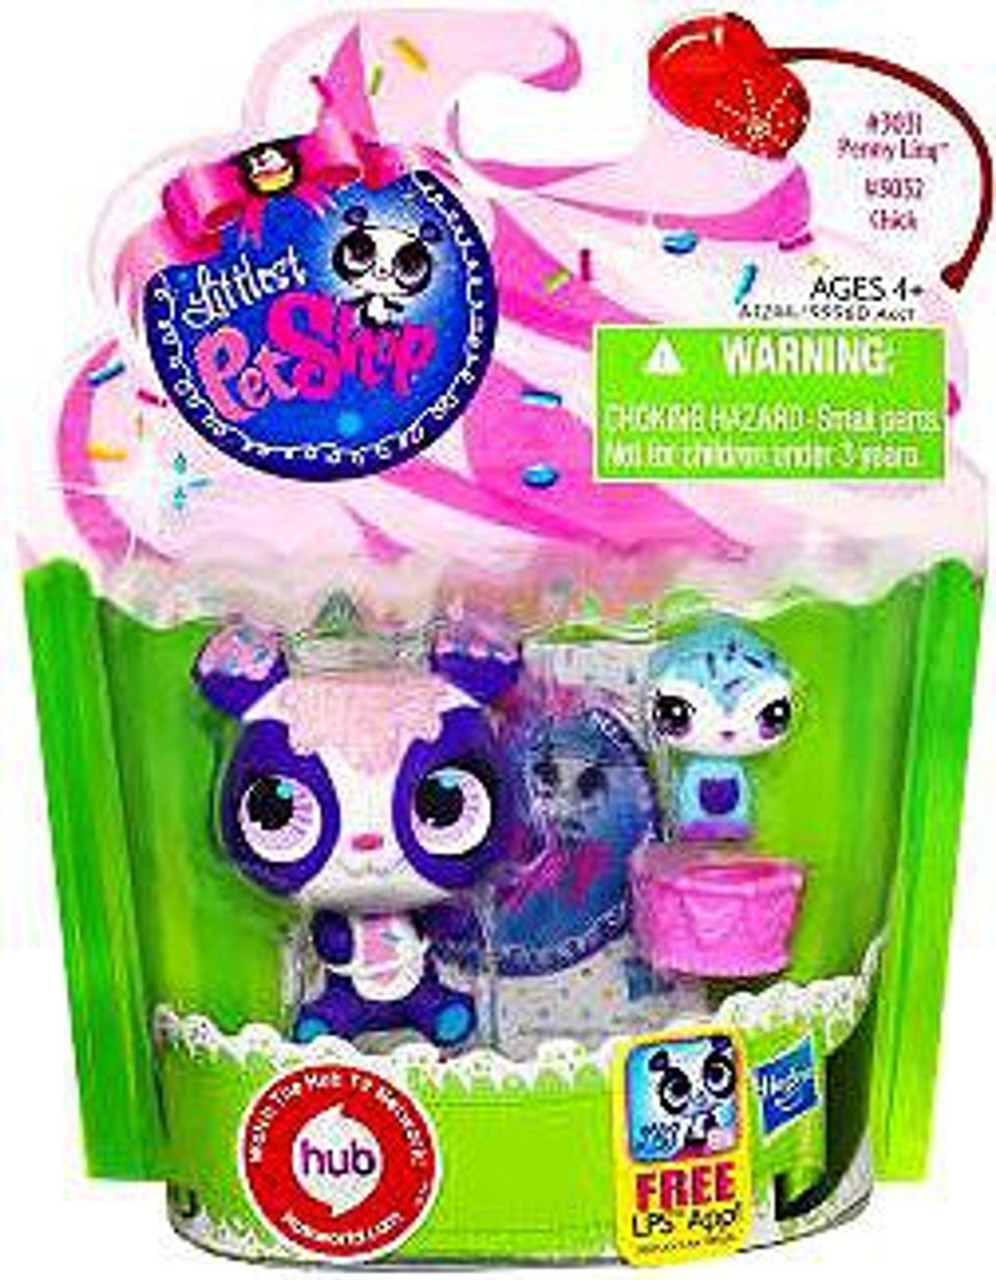 Littlest Pet Shop Panda & Bird Friend Action Figure 2-Pack